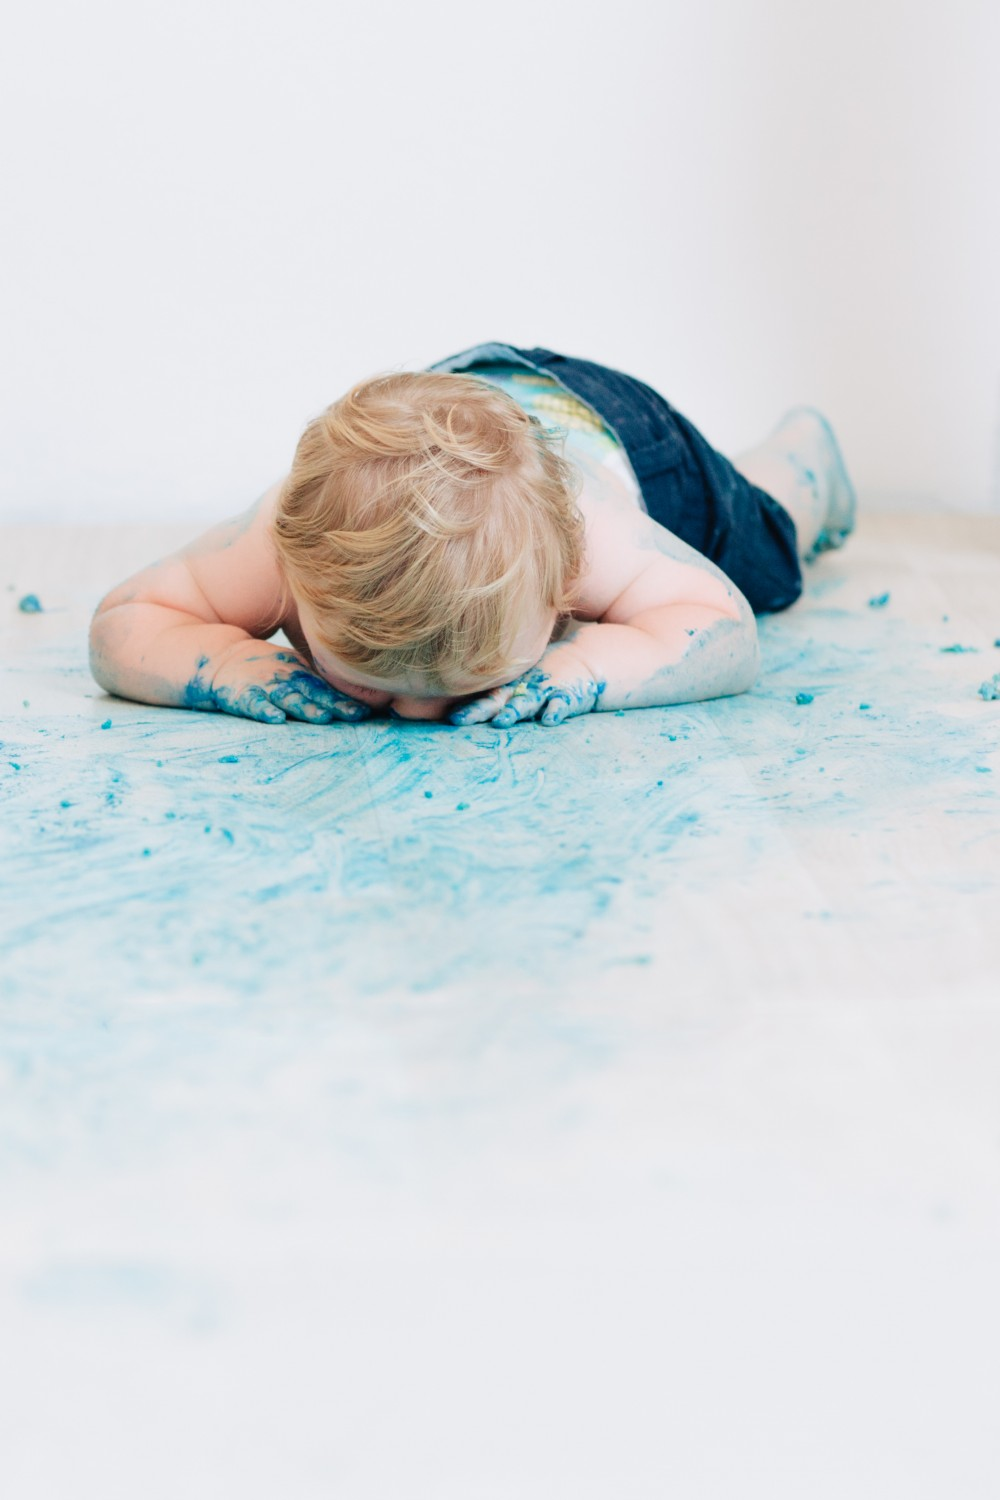 Mason's Turning One-Smash Cake Photoshoot-First Birthday-Smash Cake-First Birthday Photoshoot-Have Need Want 4